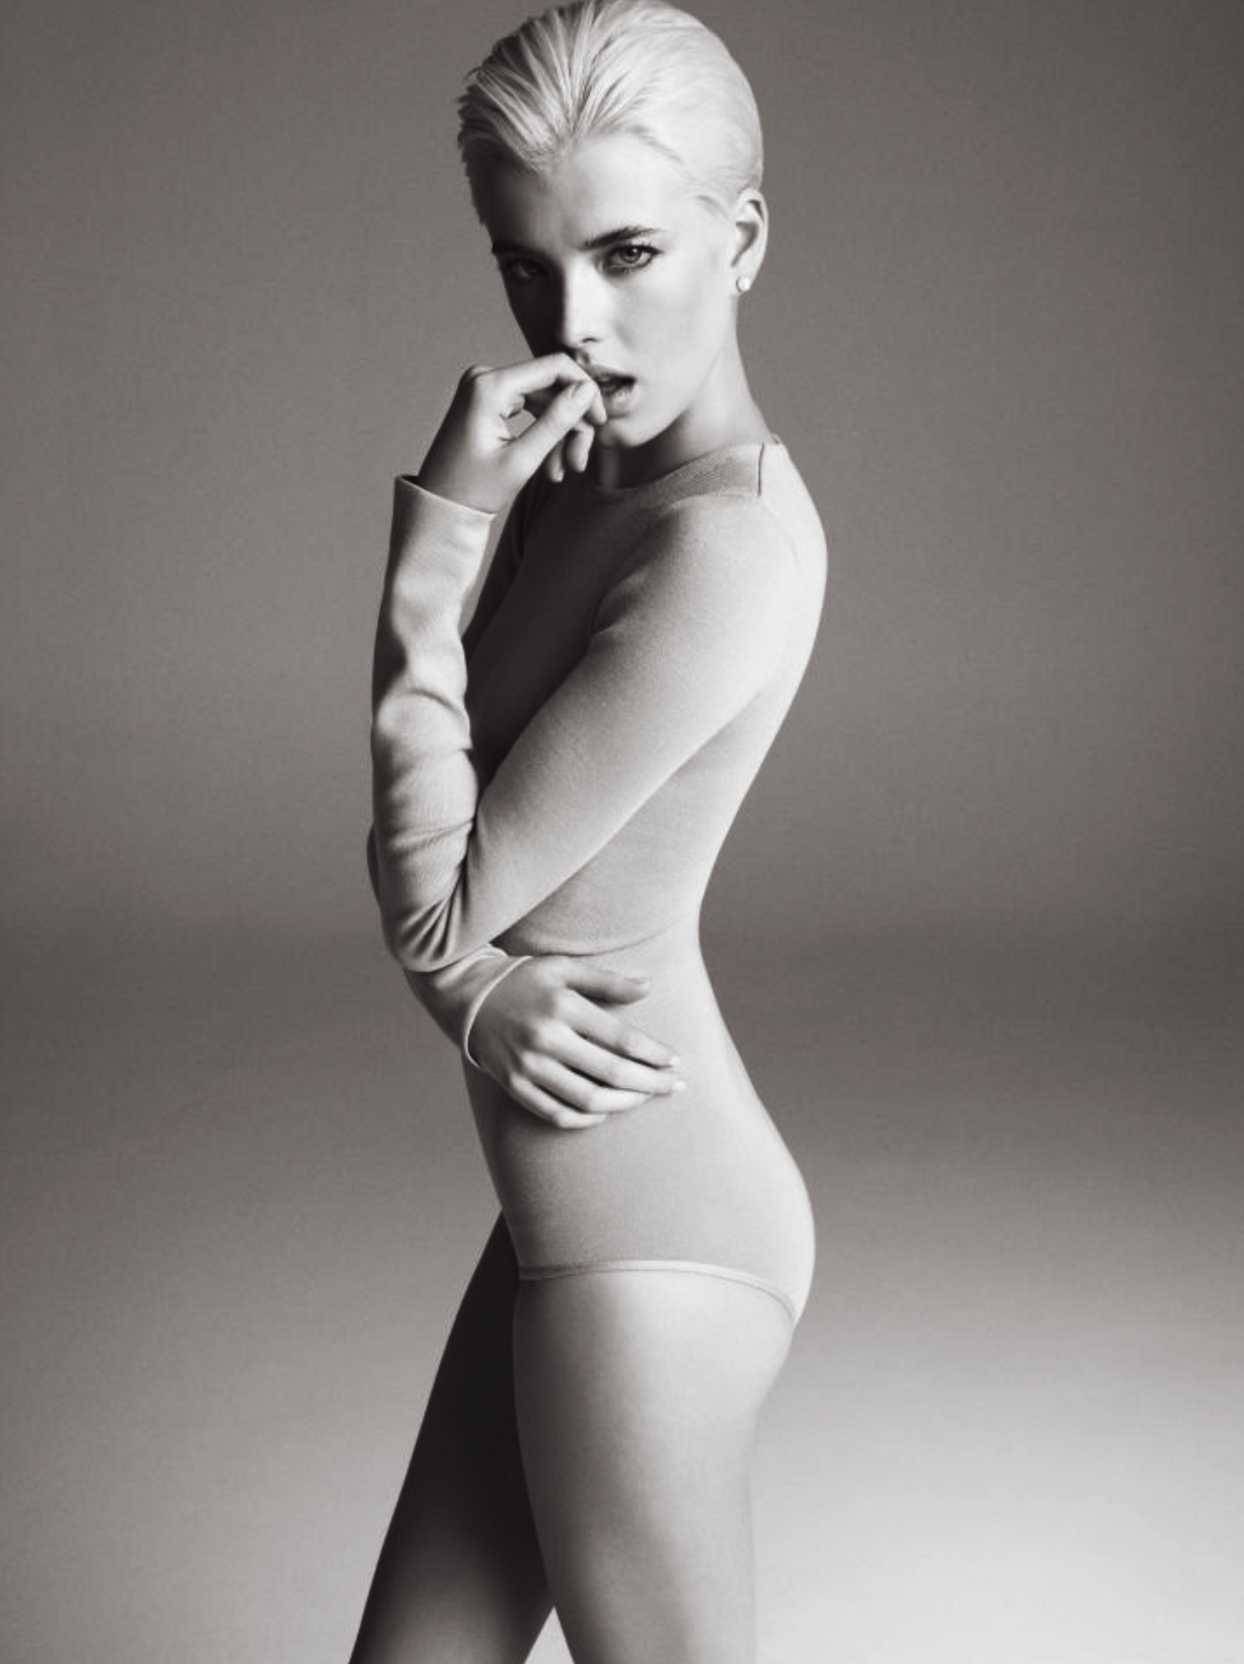 """The Importance of Being Agyness"": Agyness Deyn by Inez & Vinoodh for V #55 Fall 2008"